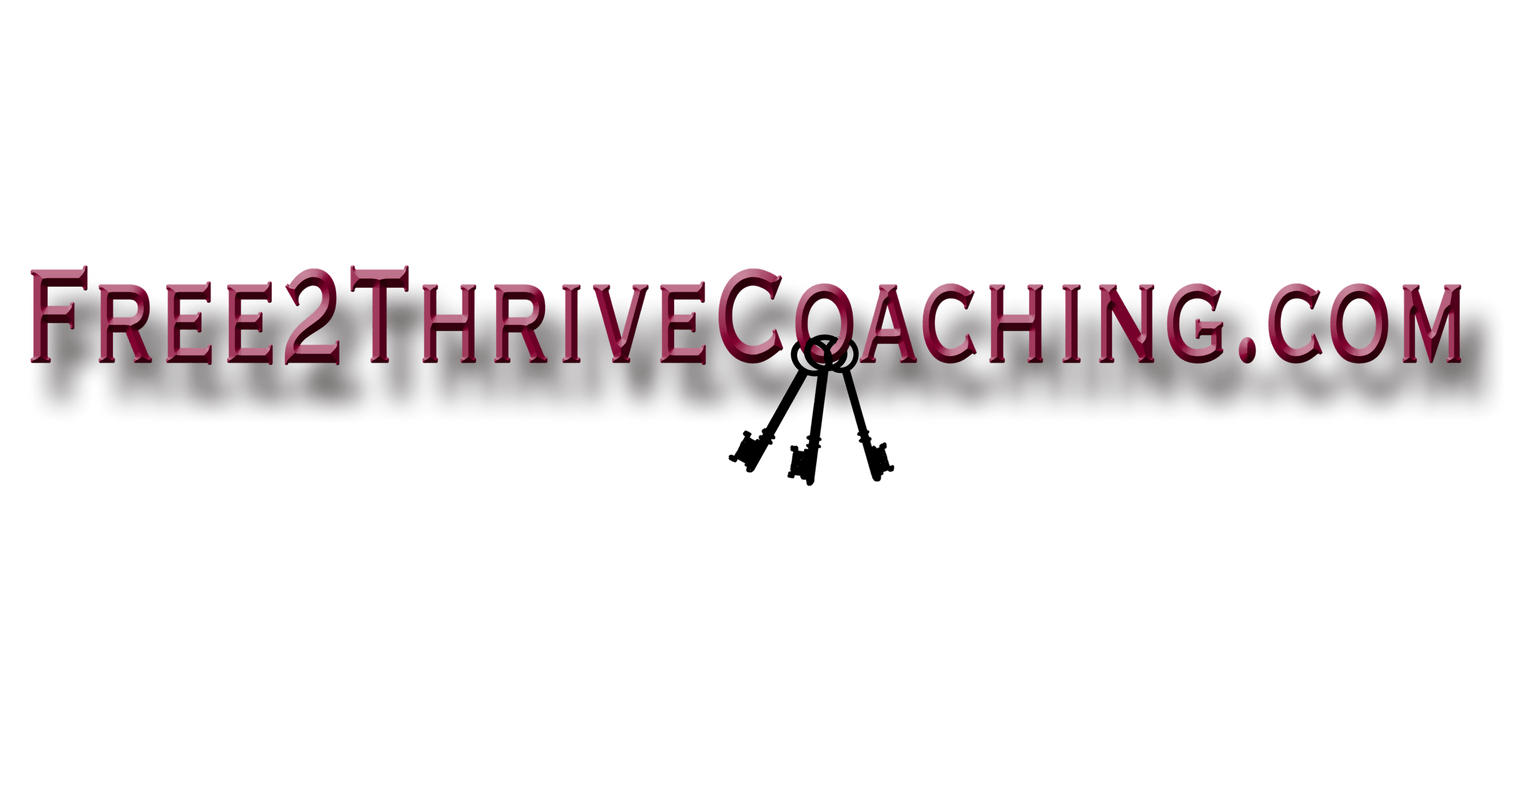 FREE 2 THRIVE COACHING, LLC